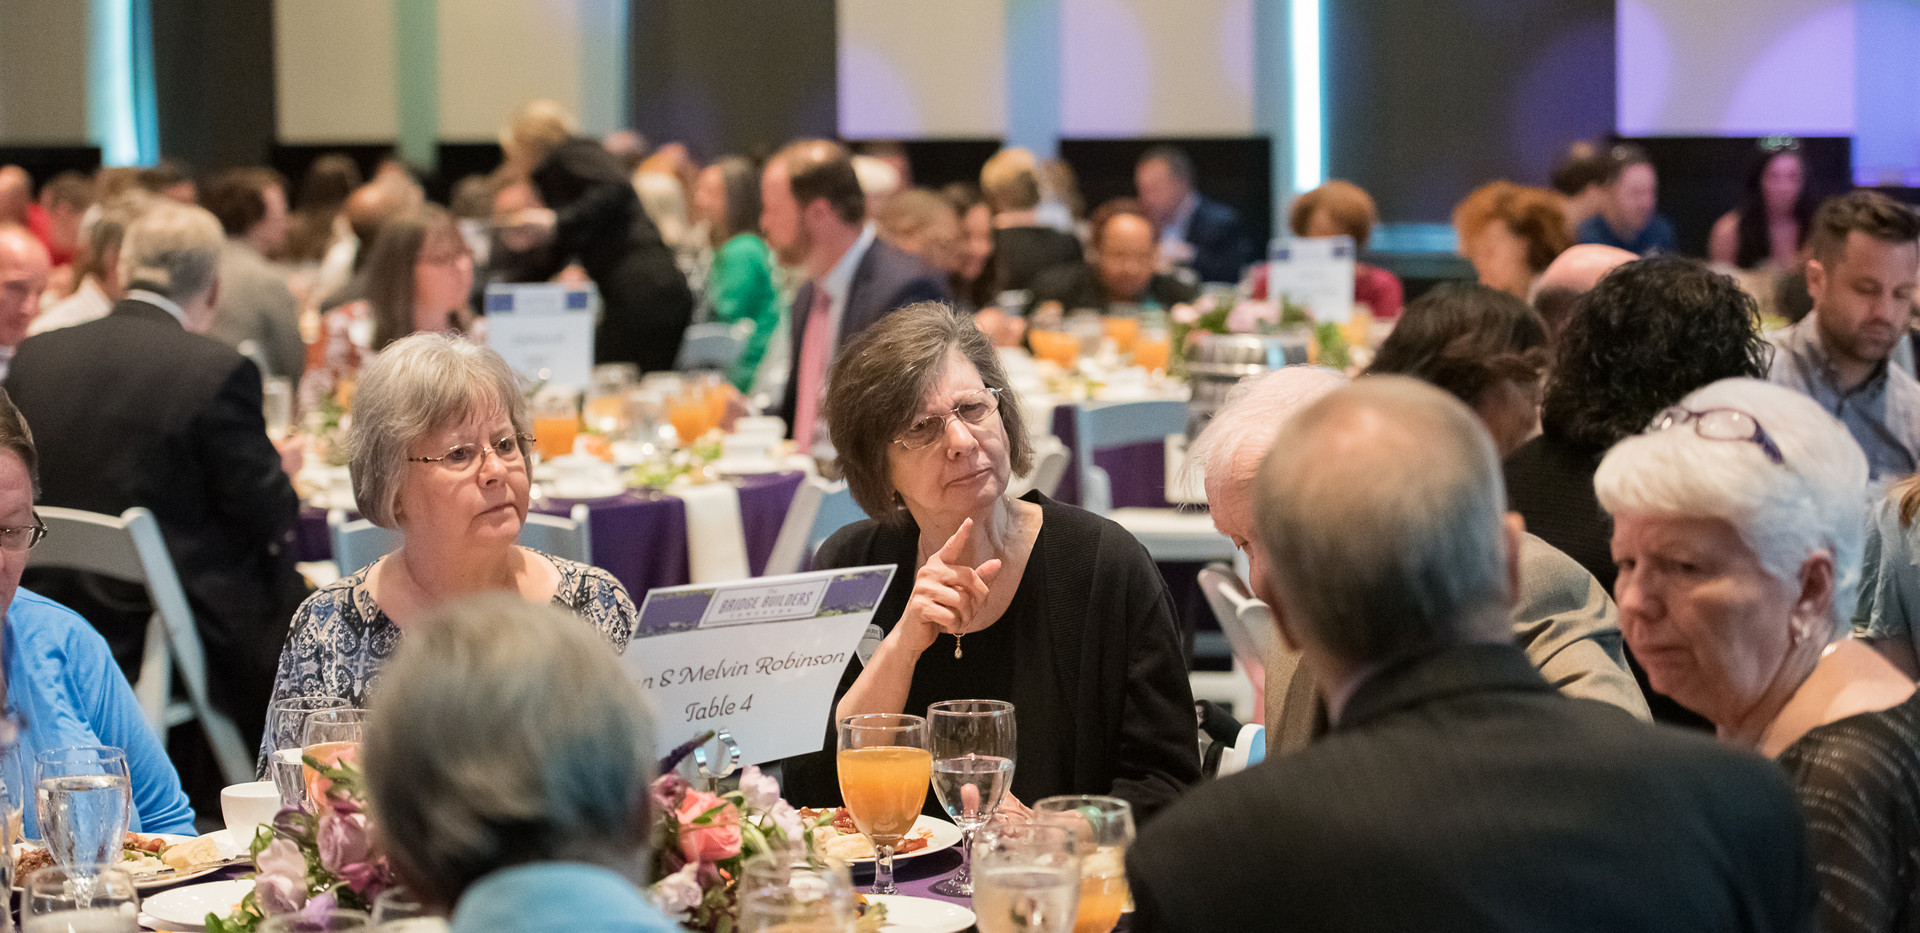 2019-04-bridges-luncheon-hr-23.jpg